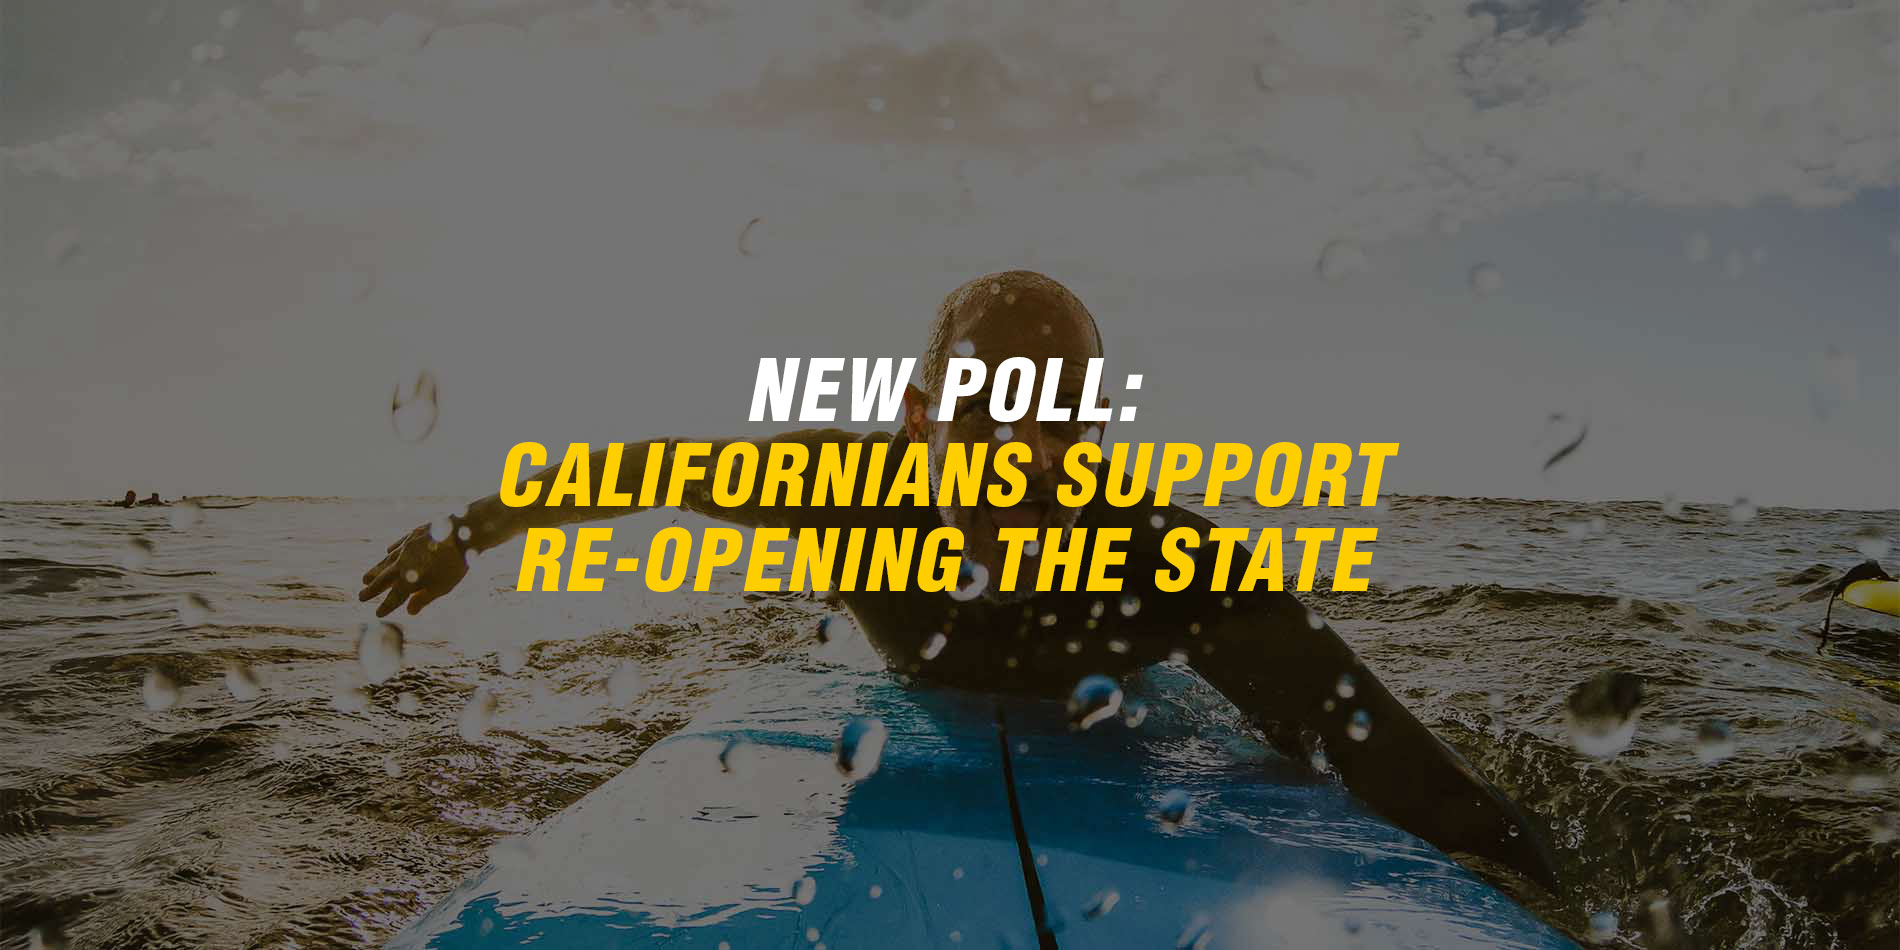 Poll Shows California Voters Support Reopening, Support the Right to Protest, and Oppose Covid-19 Payouts to Illegal Immigrants